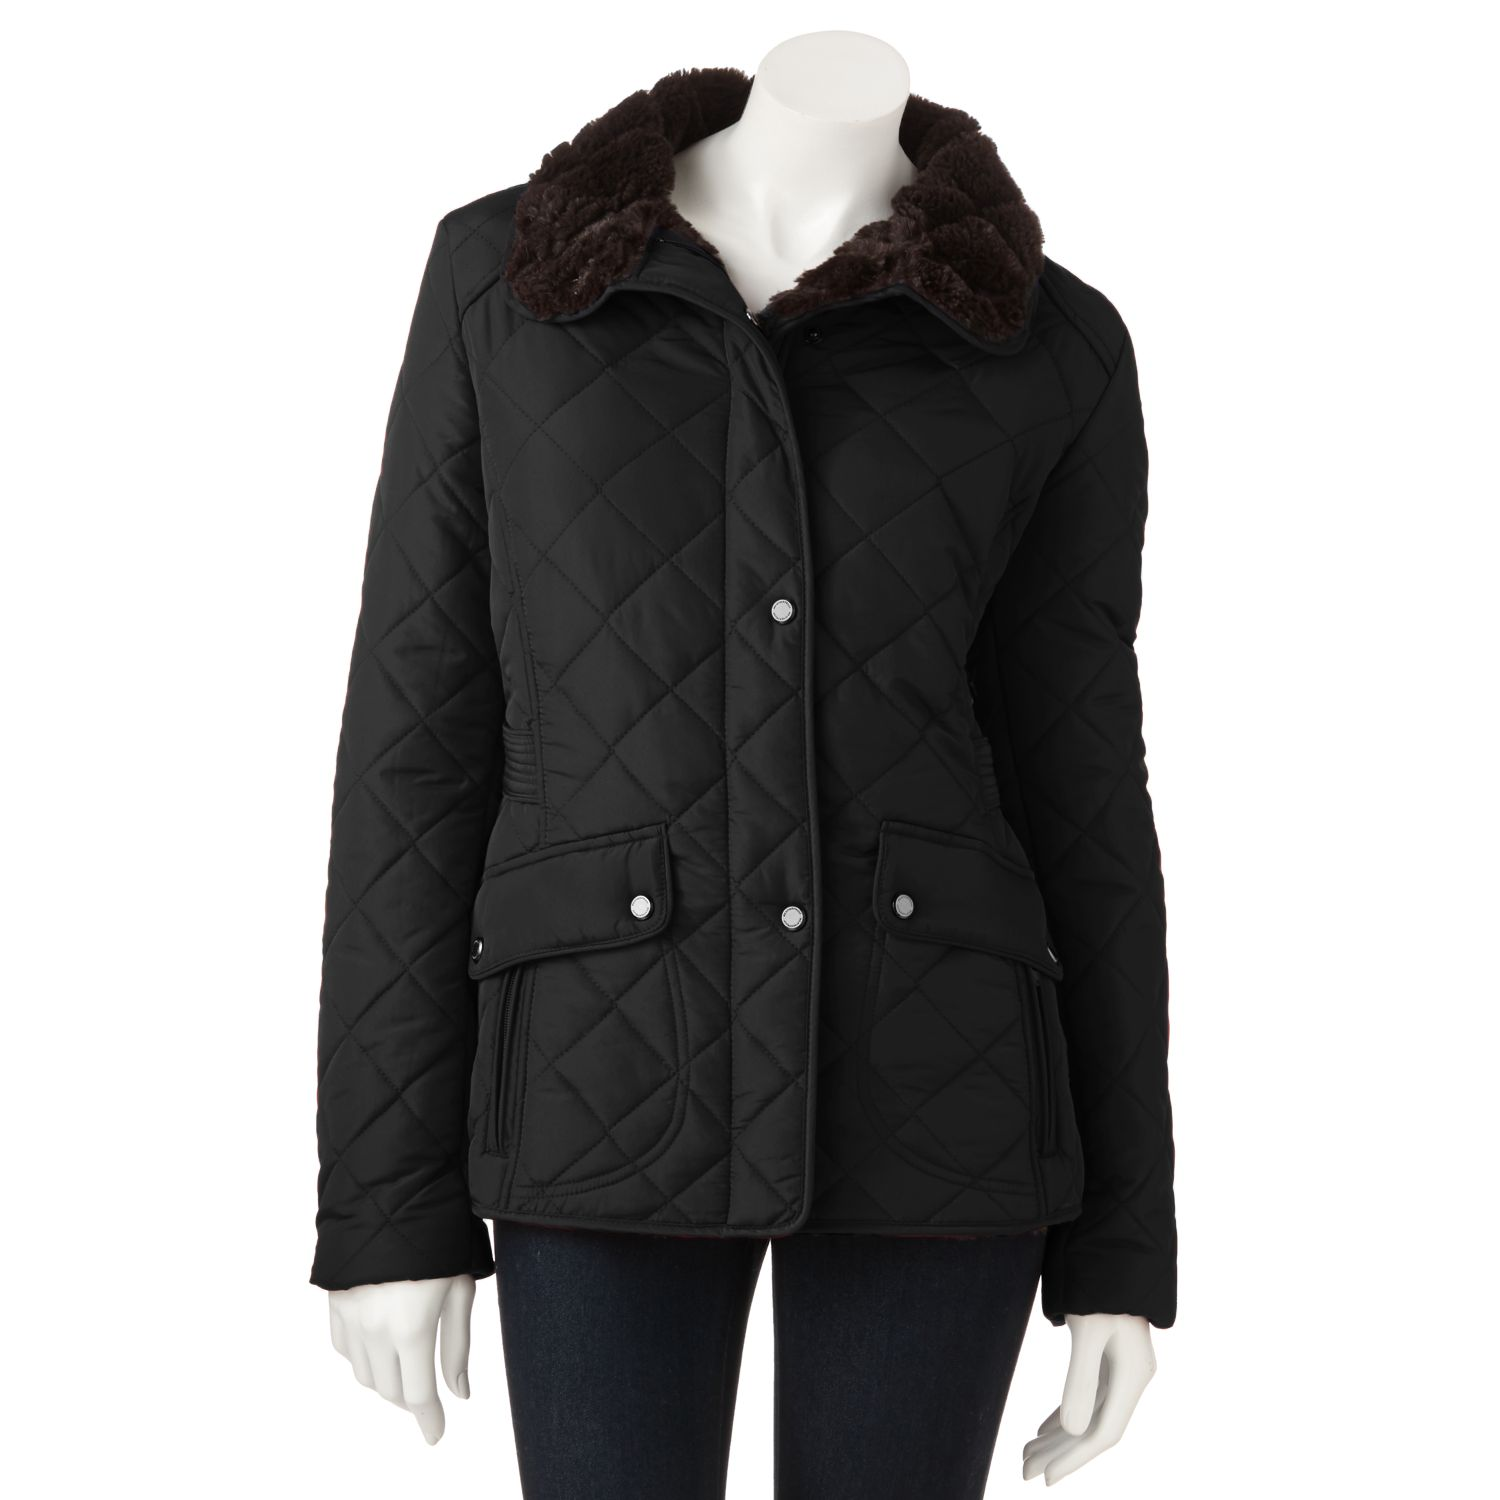 Weathercast Quilted Jacket